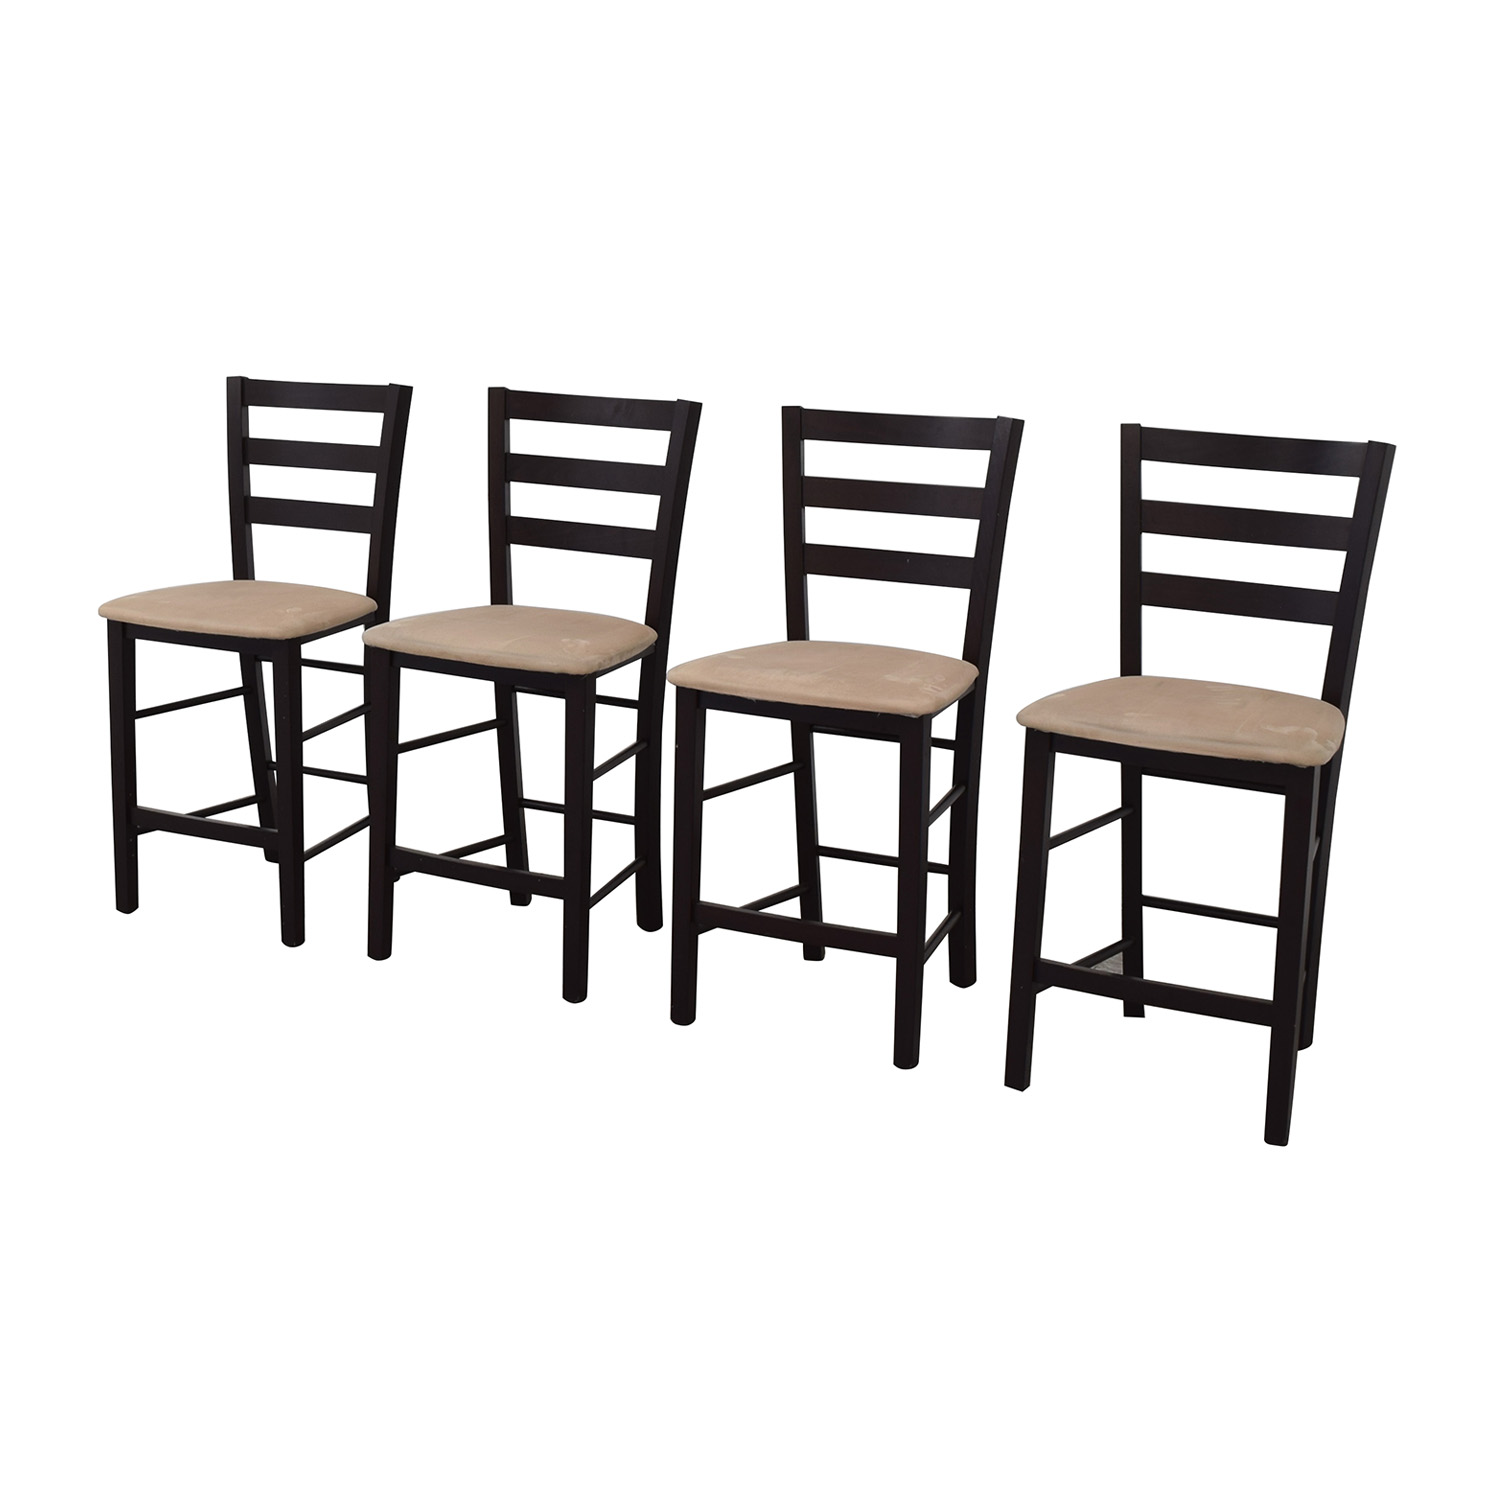 Remarkable 84 Off Macys Macys Cafe Latte Counter Height Bar Stools Chairs Machost Co Dining Chair Design Ideas Machostcouk